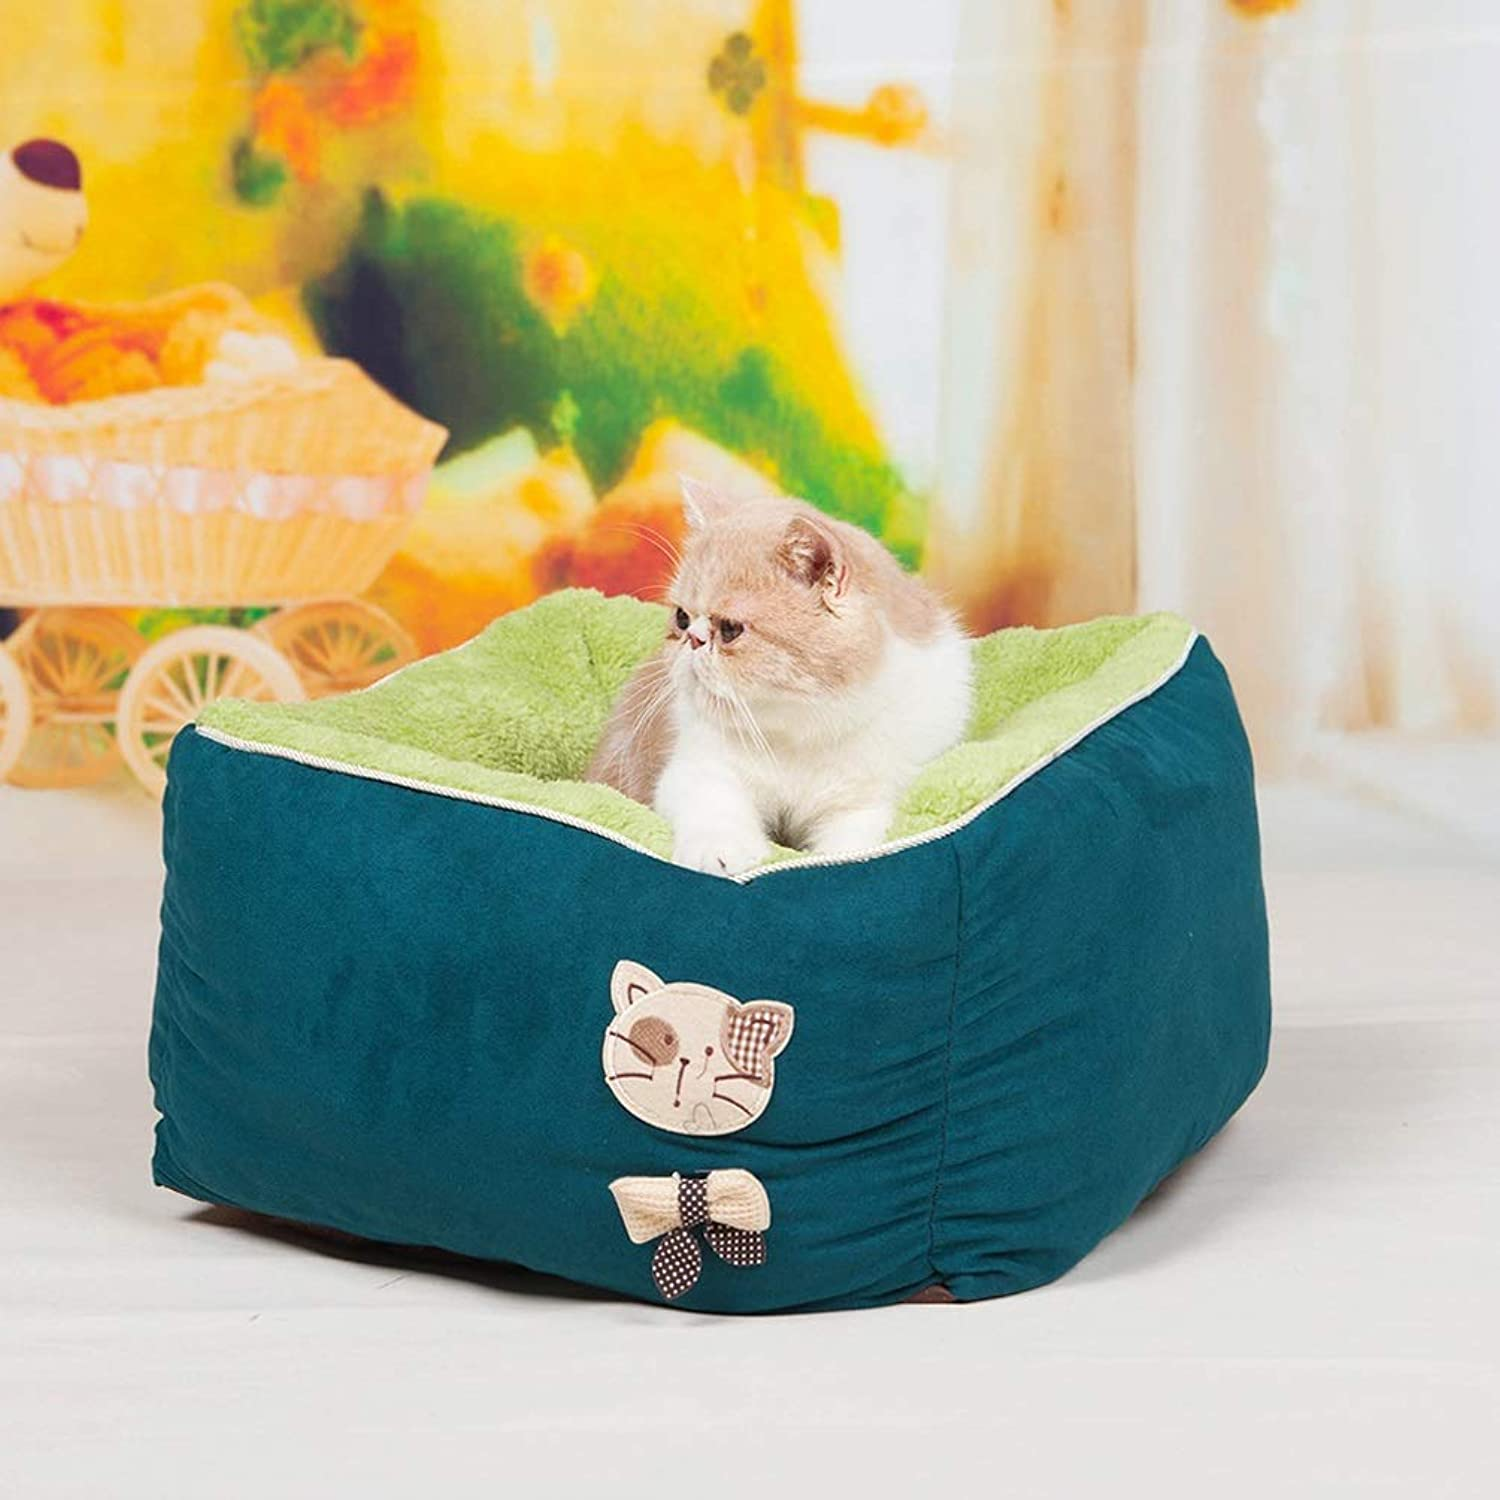 QYQ Pet Kennel Cat Litter Completely Detachable And Warm Comfortable Breathable Fluff Zipper Design Material Wear and Tear Resistant Bite Threepiece Nest Teddy Pet Bed (color   GREEN)